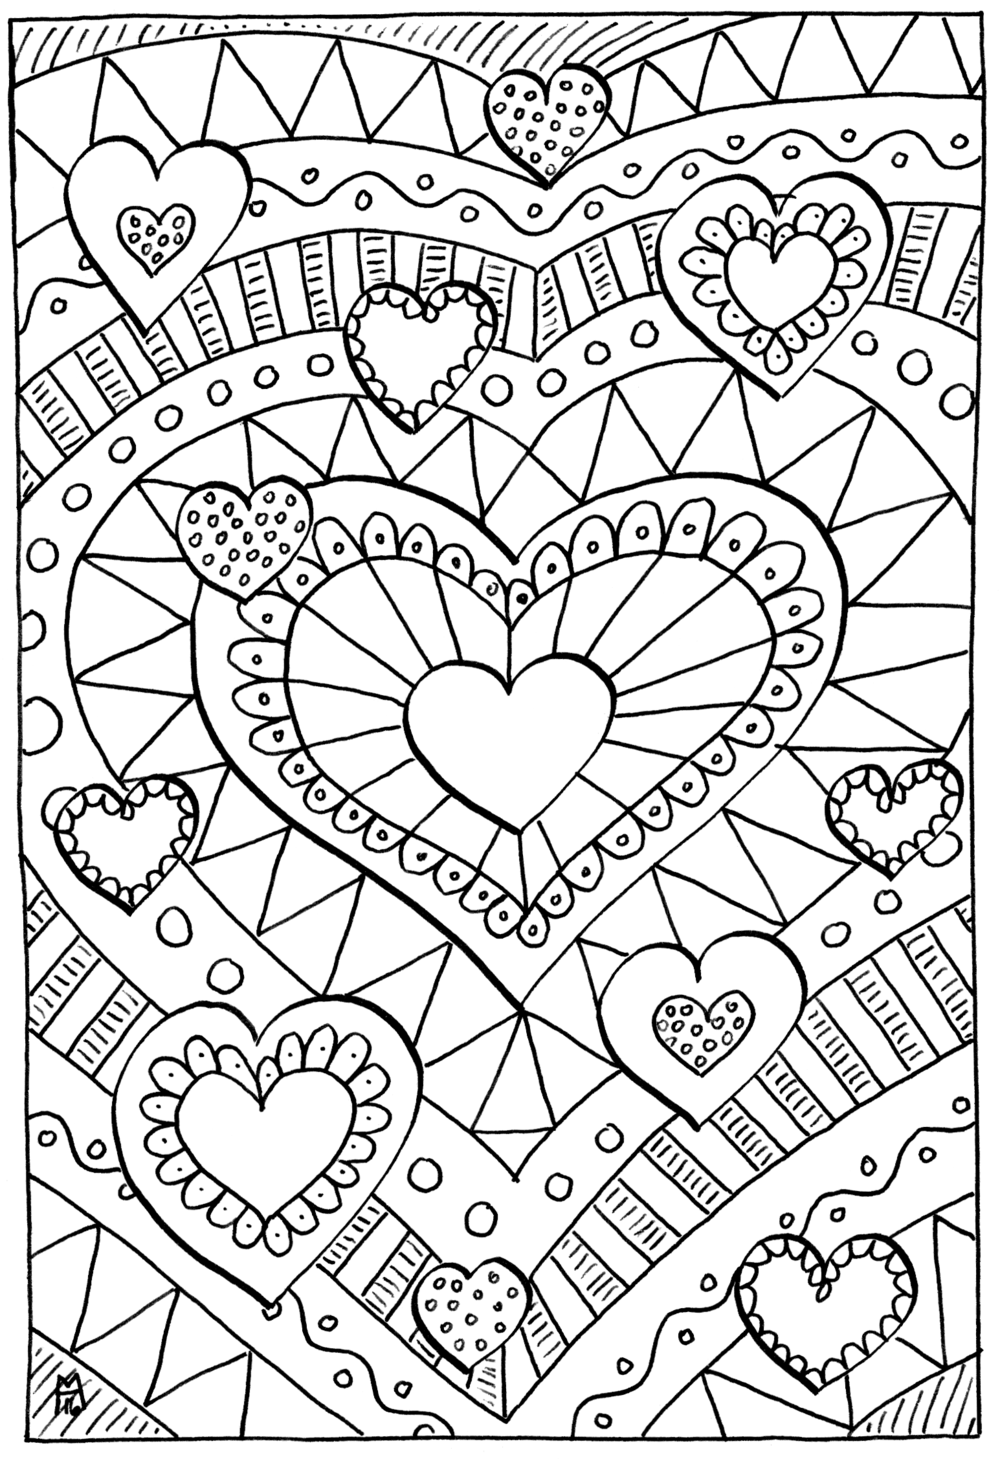 coloring pictures black and white black panther coloring pages best coloring pages for kids pictures coloring white and black